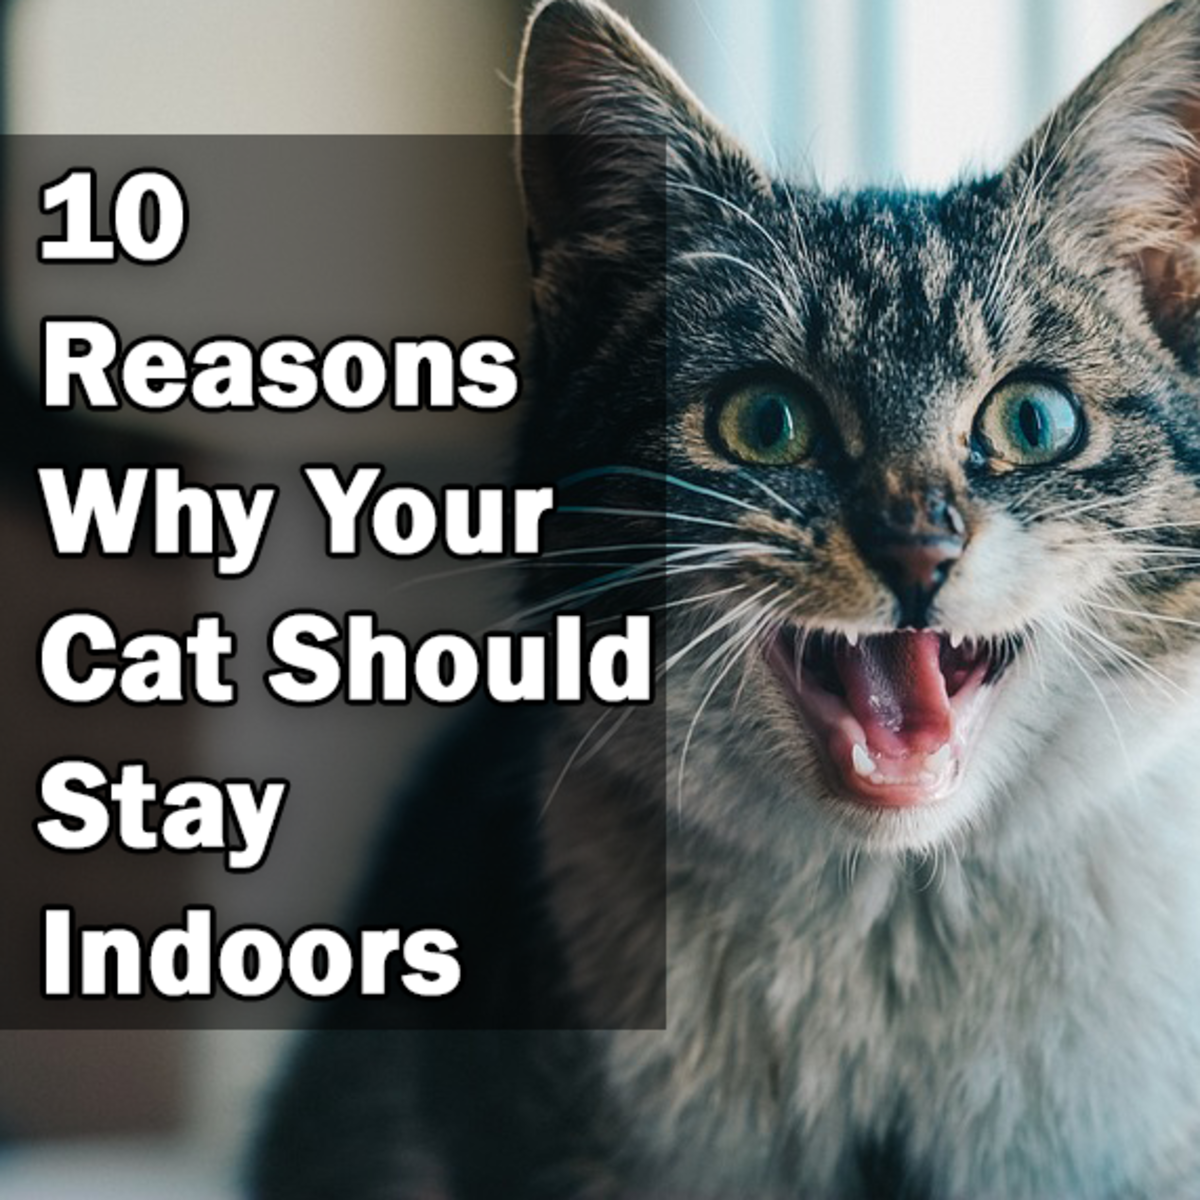 10 Reasons Why Your Cat Should Stay Indoors